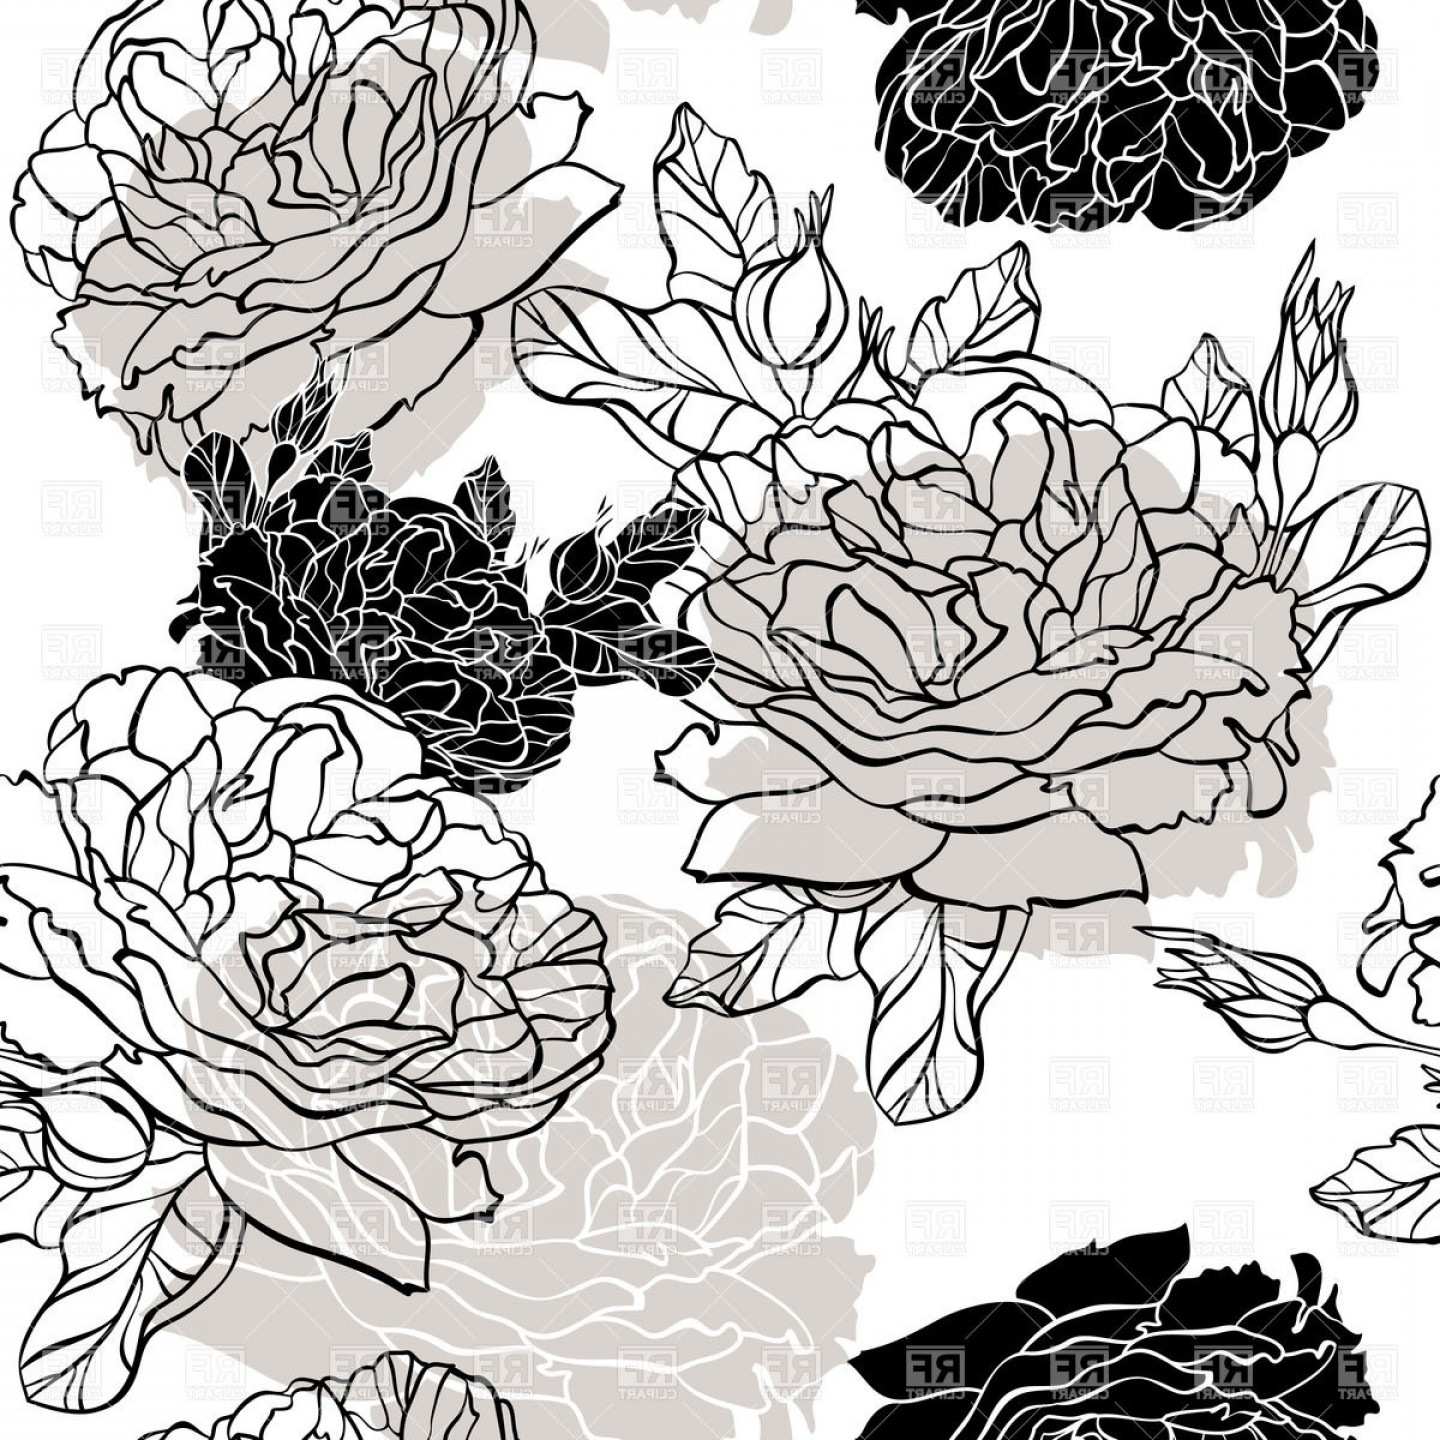 Floral Vector Illustration: Seamless Floral Background With Roses Outlines Vector Clipart